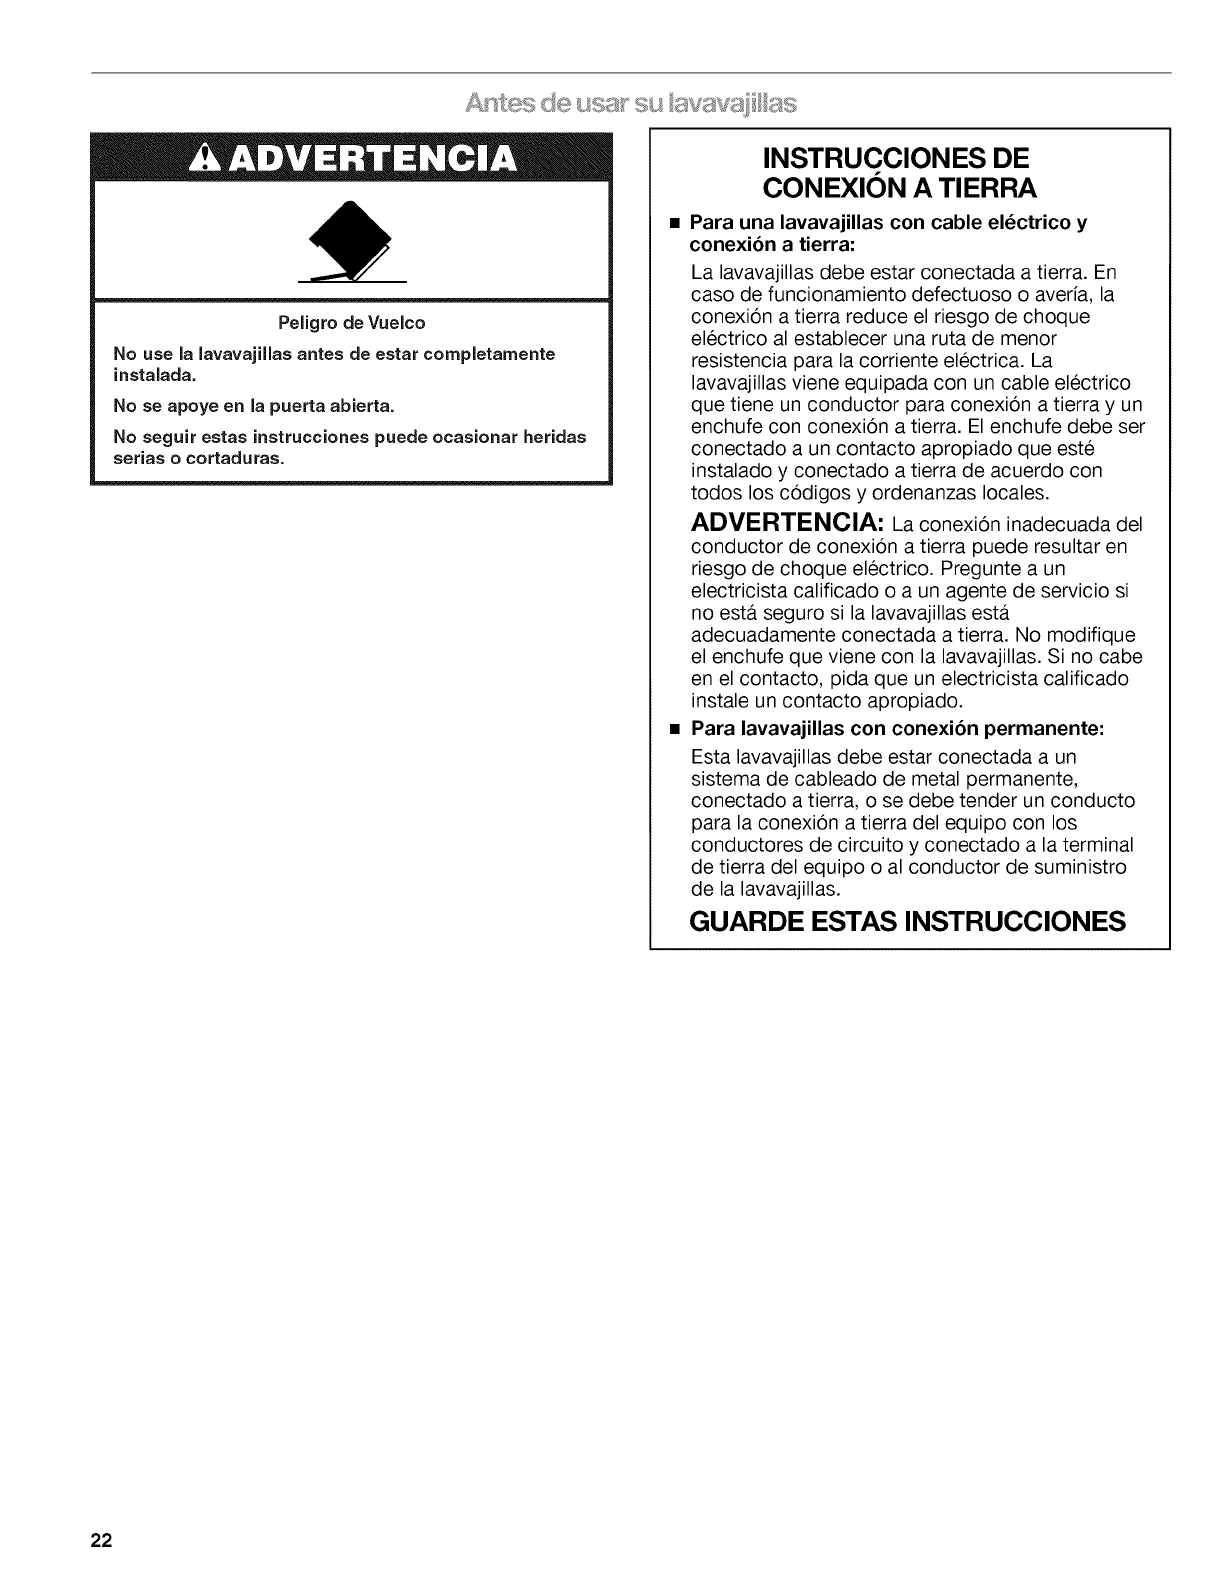 Page 22 of Kenmore Dishwasher 665.1345 User Guide